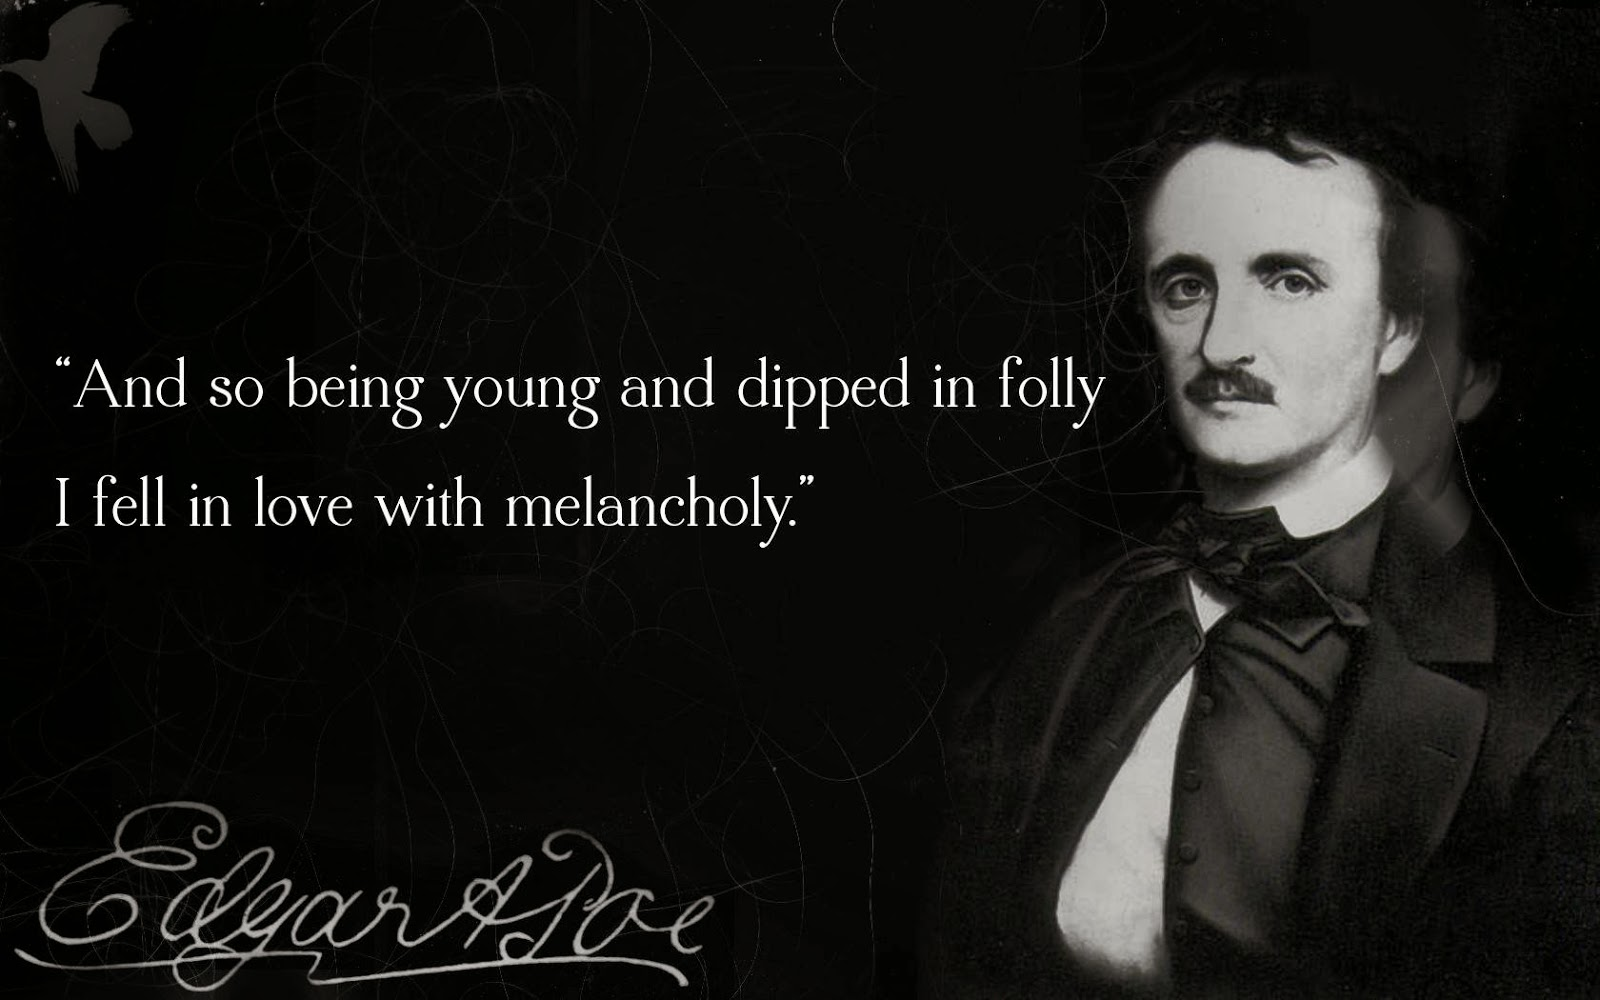 edgar allan poe quotes 16